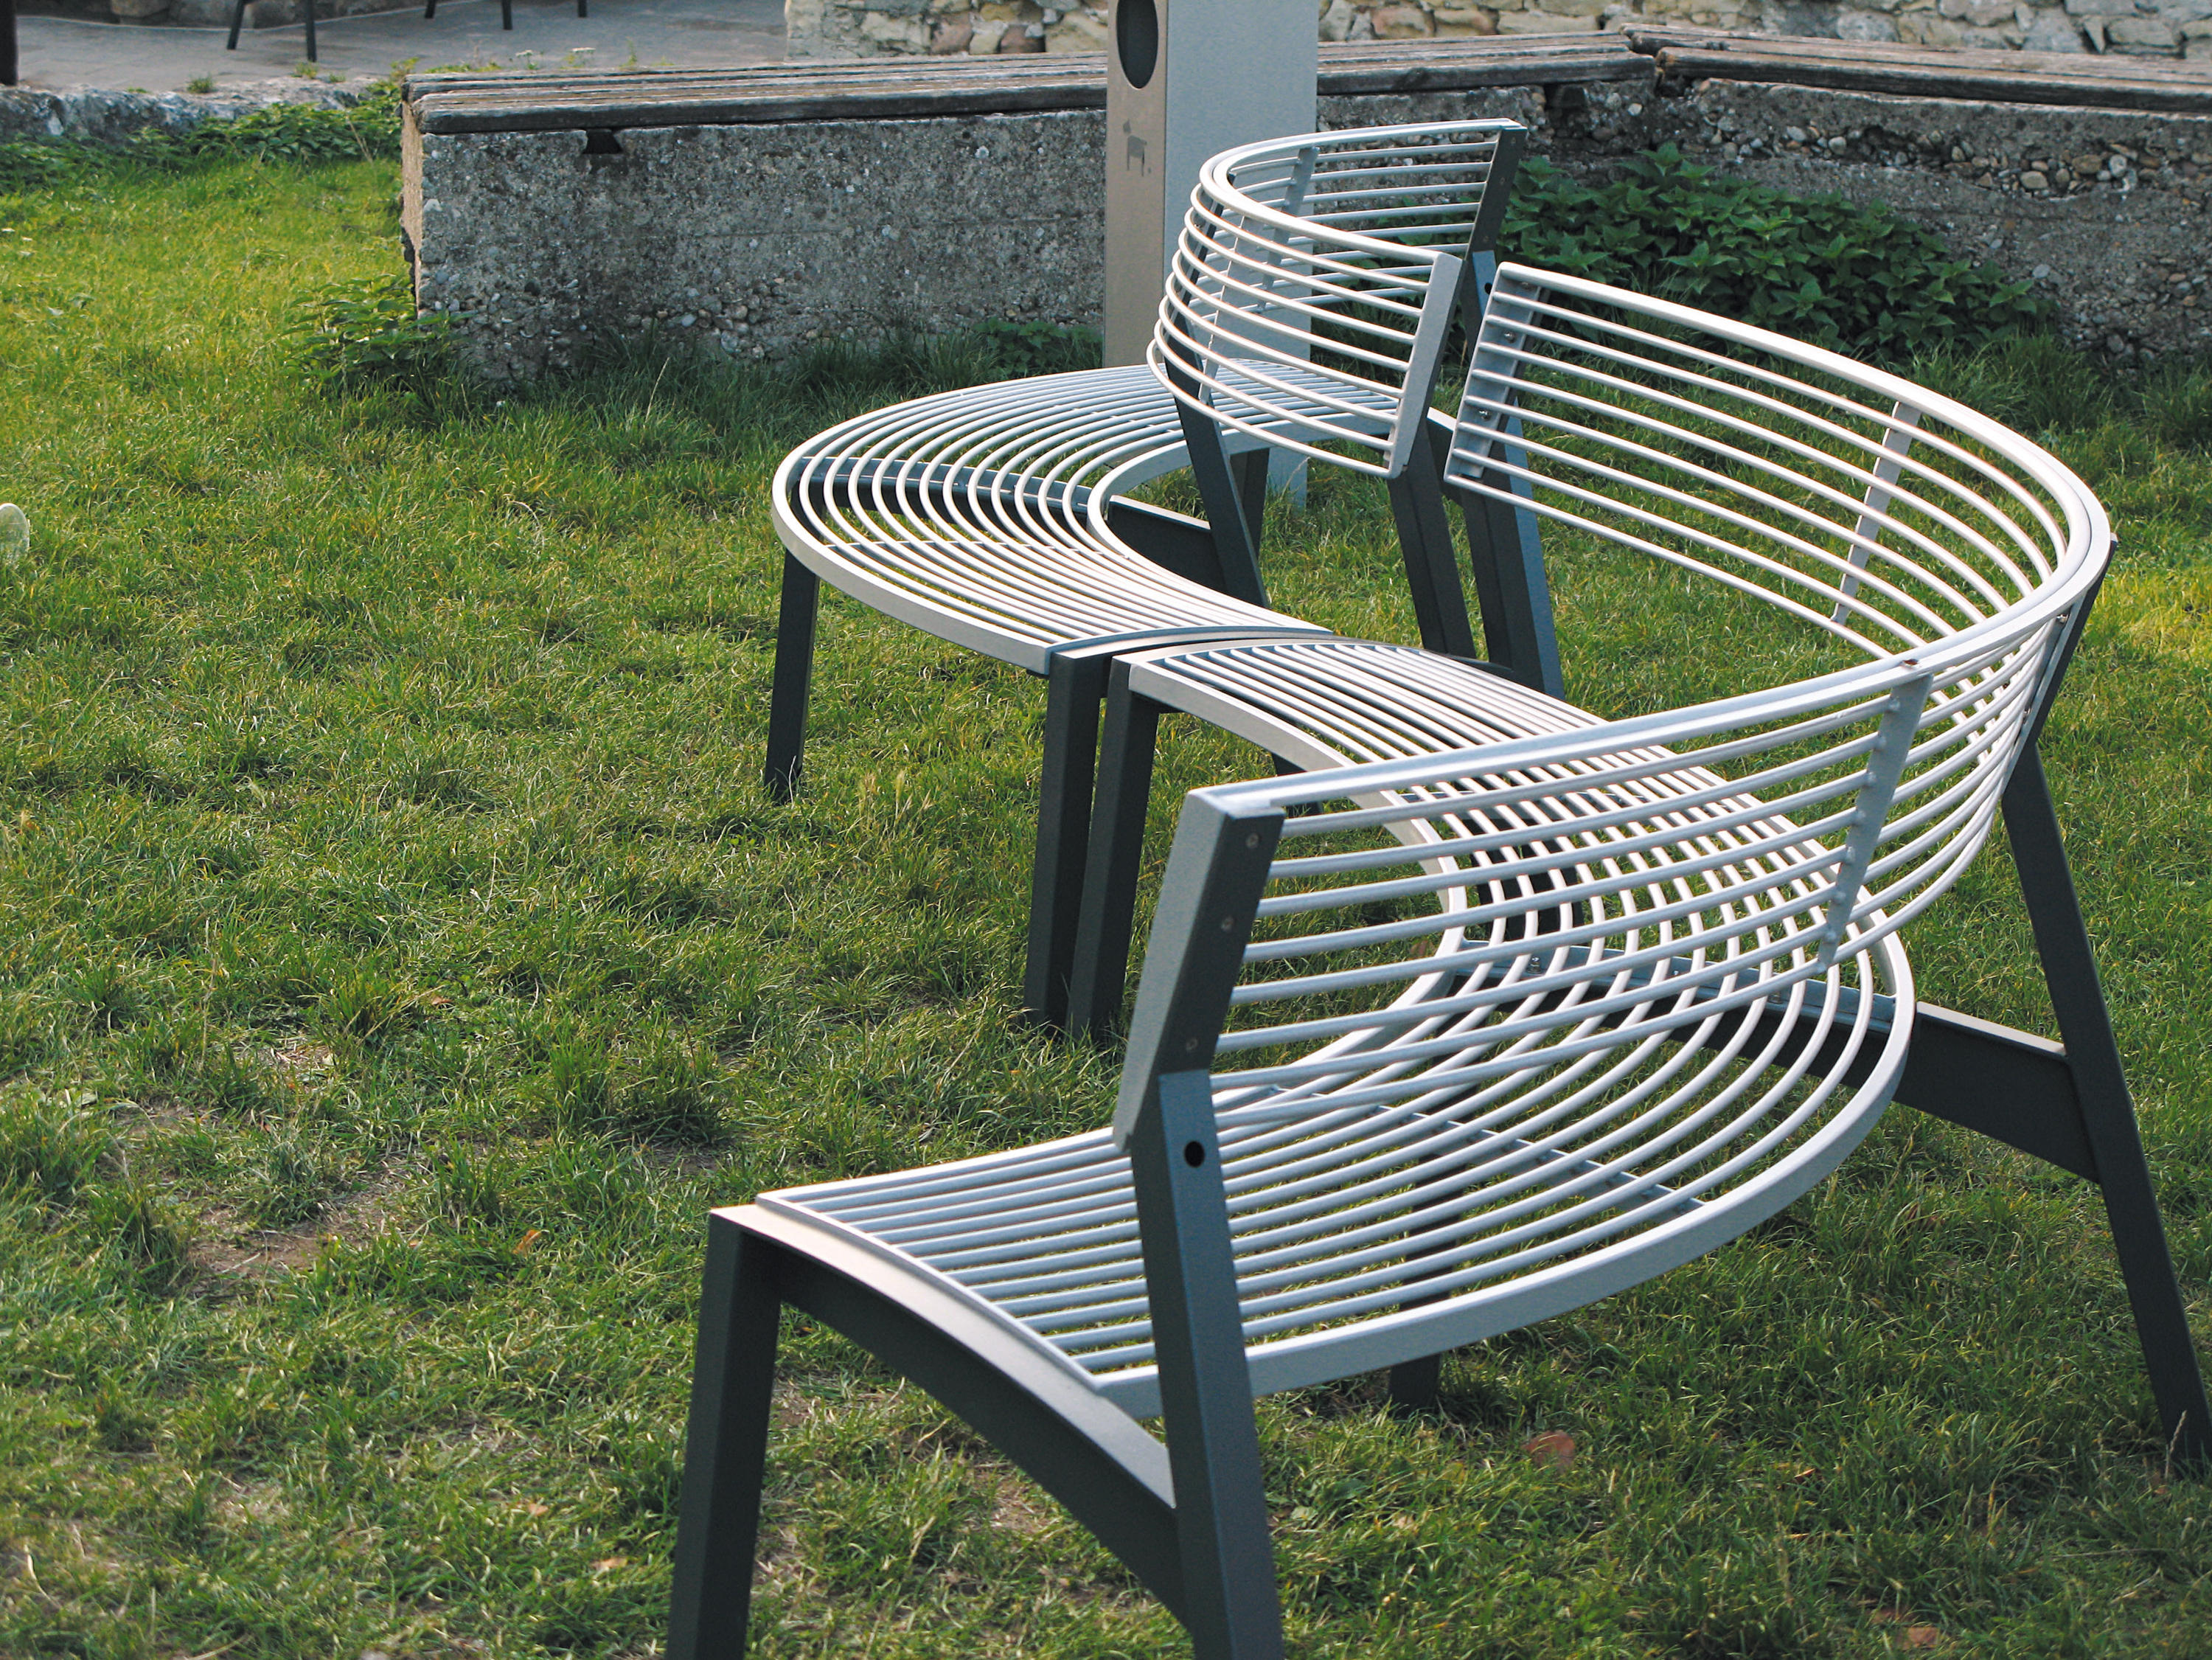 Vera Park Bench Exterior Benches From Mmcit Architonic